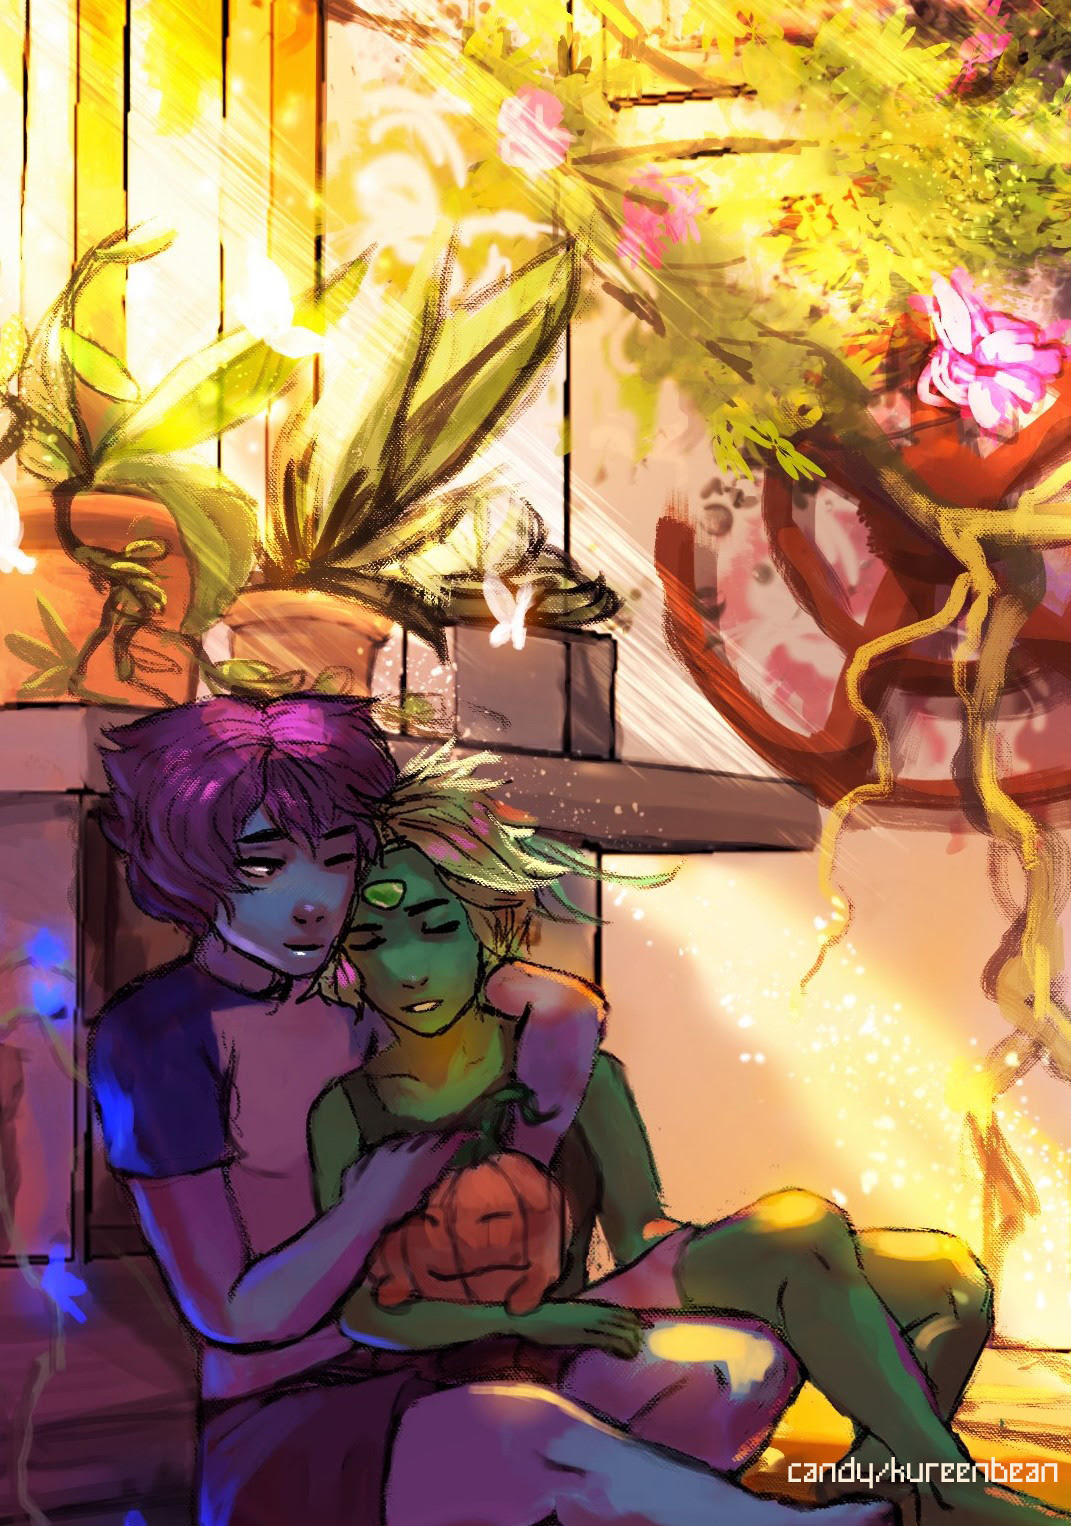 I feel like Lapidot would make their own greenhouse shed but with a little tech and some experiments by Peri while Lapis looks after the plants.